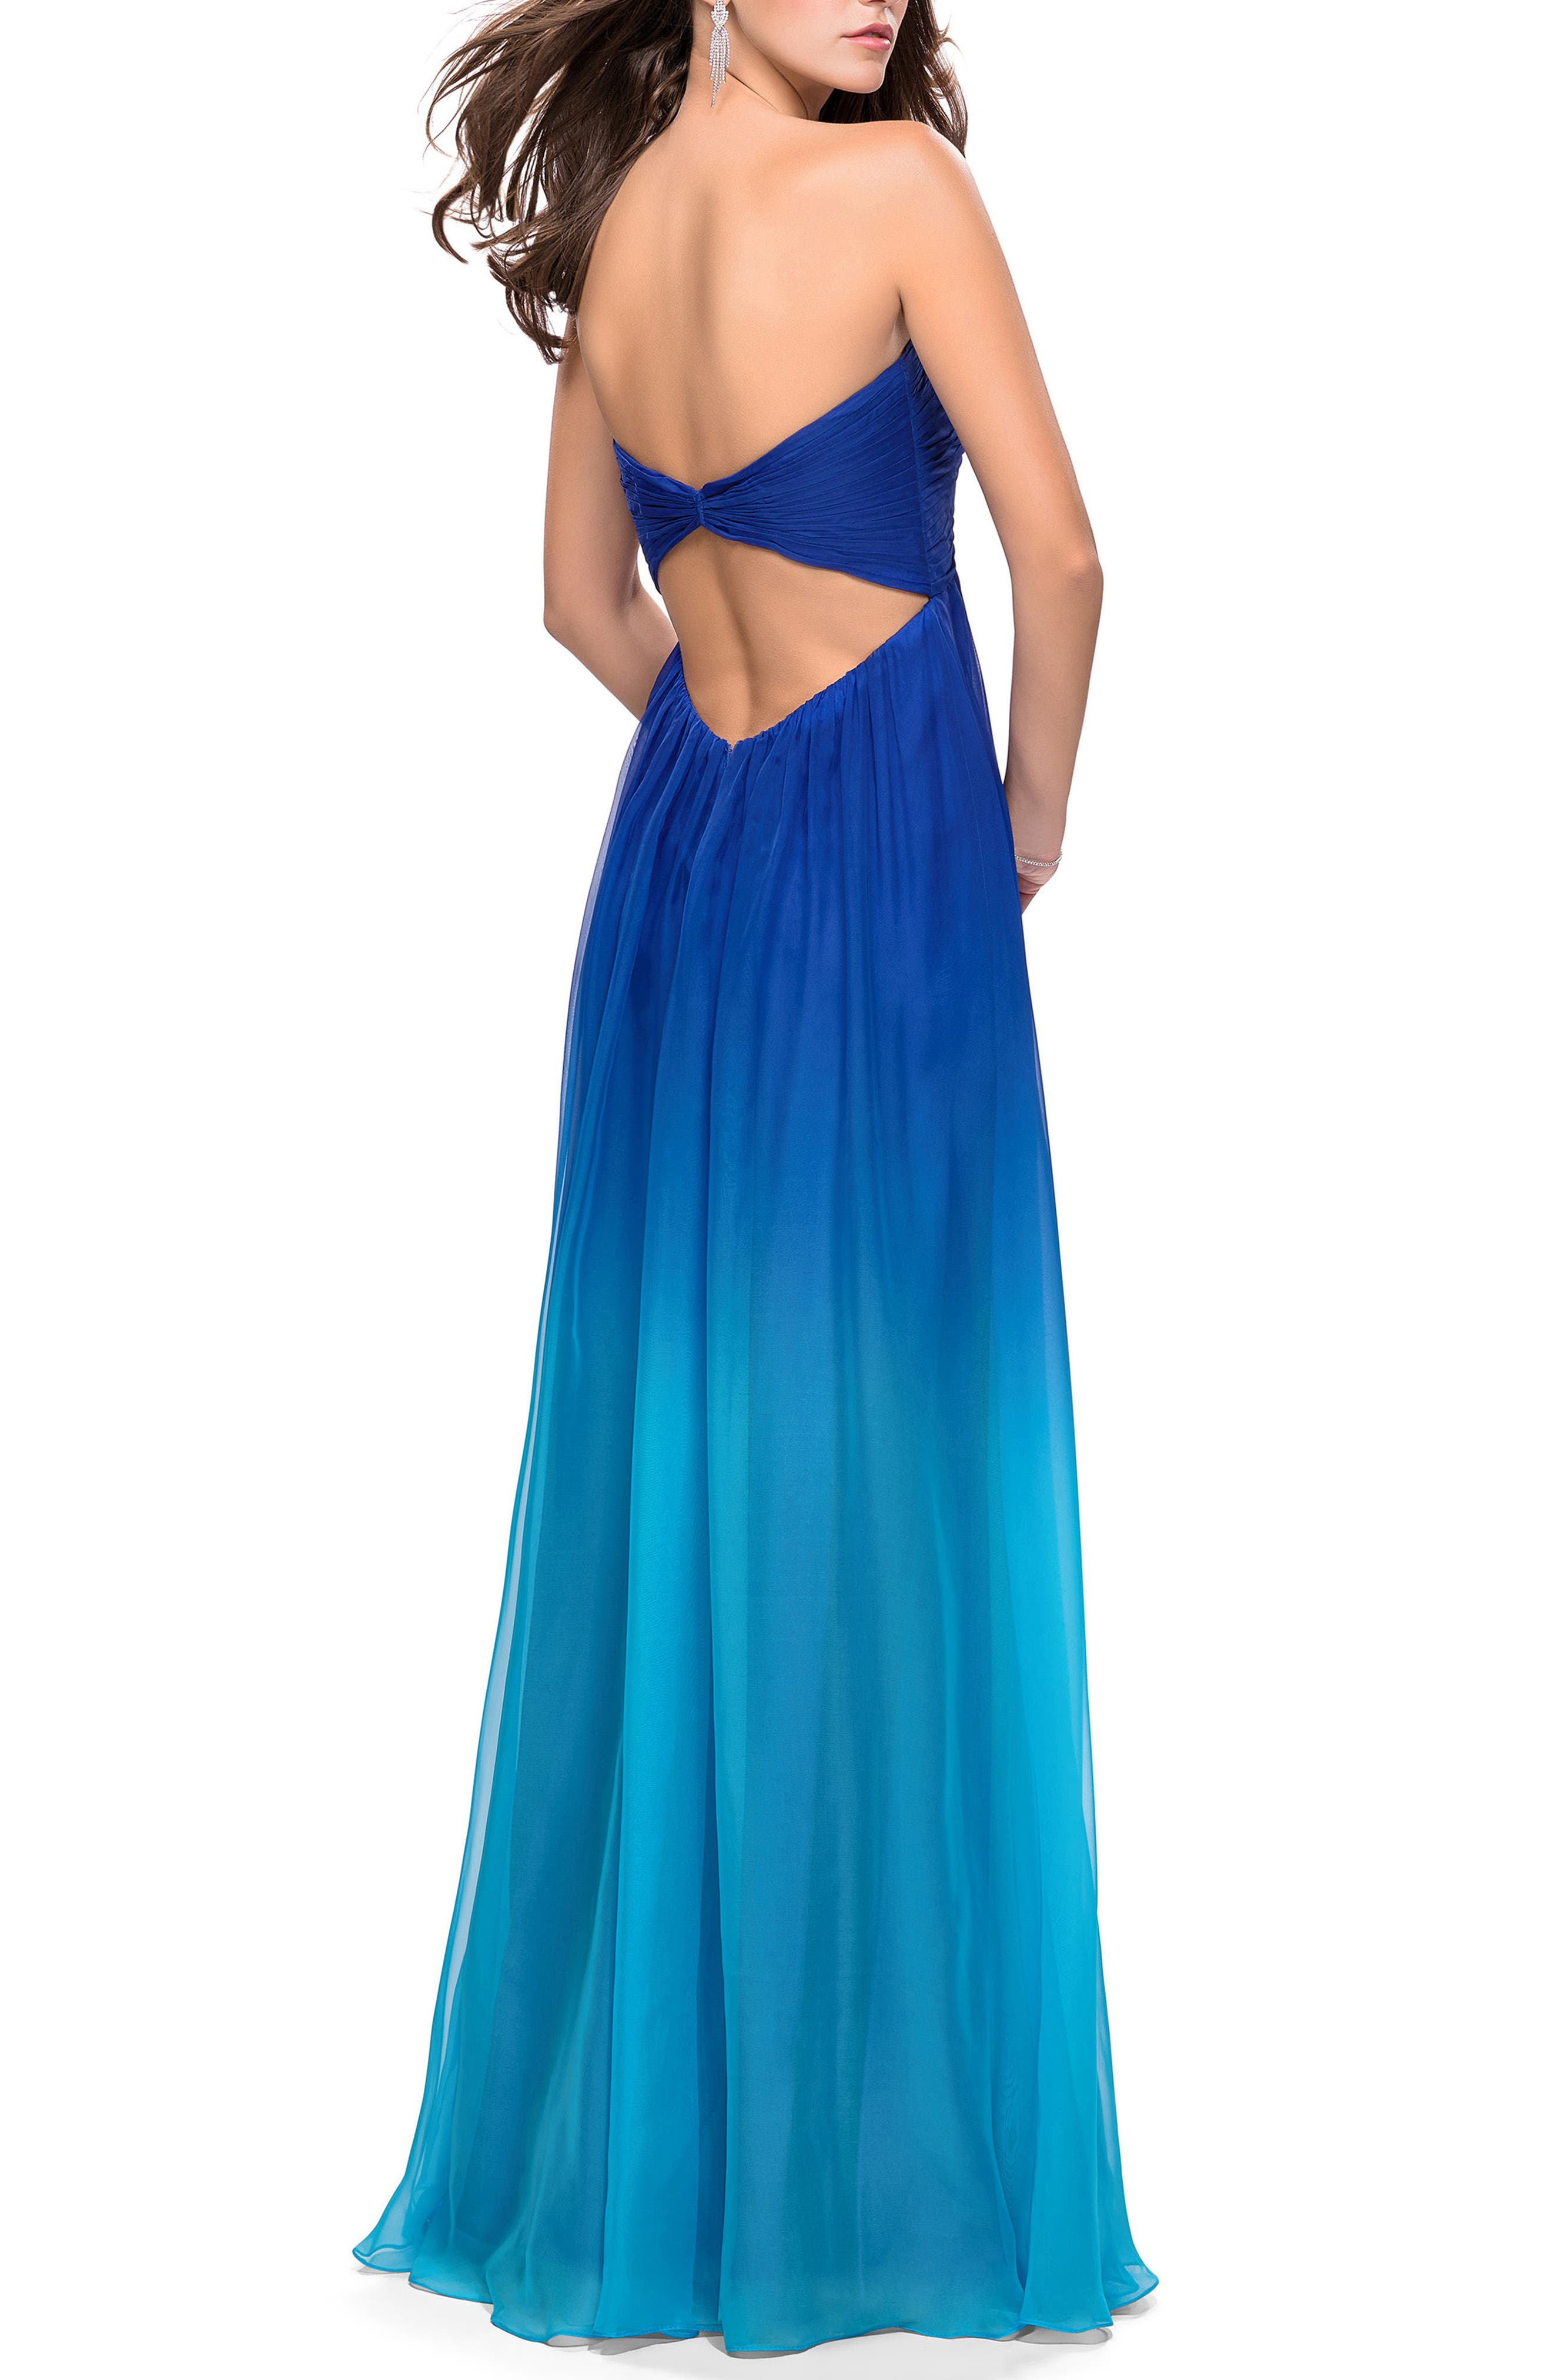 Ruched Ombré Chiffon Strapless Gown,                             Alternate thumbnail 3, color,                             440